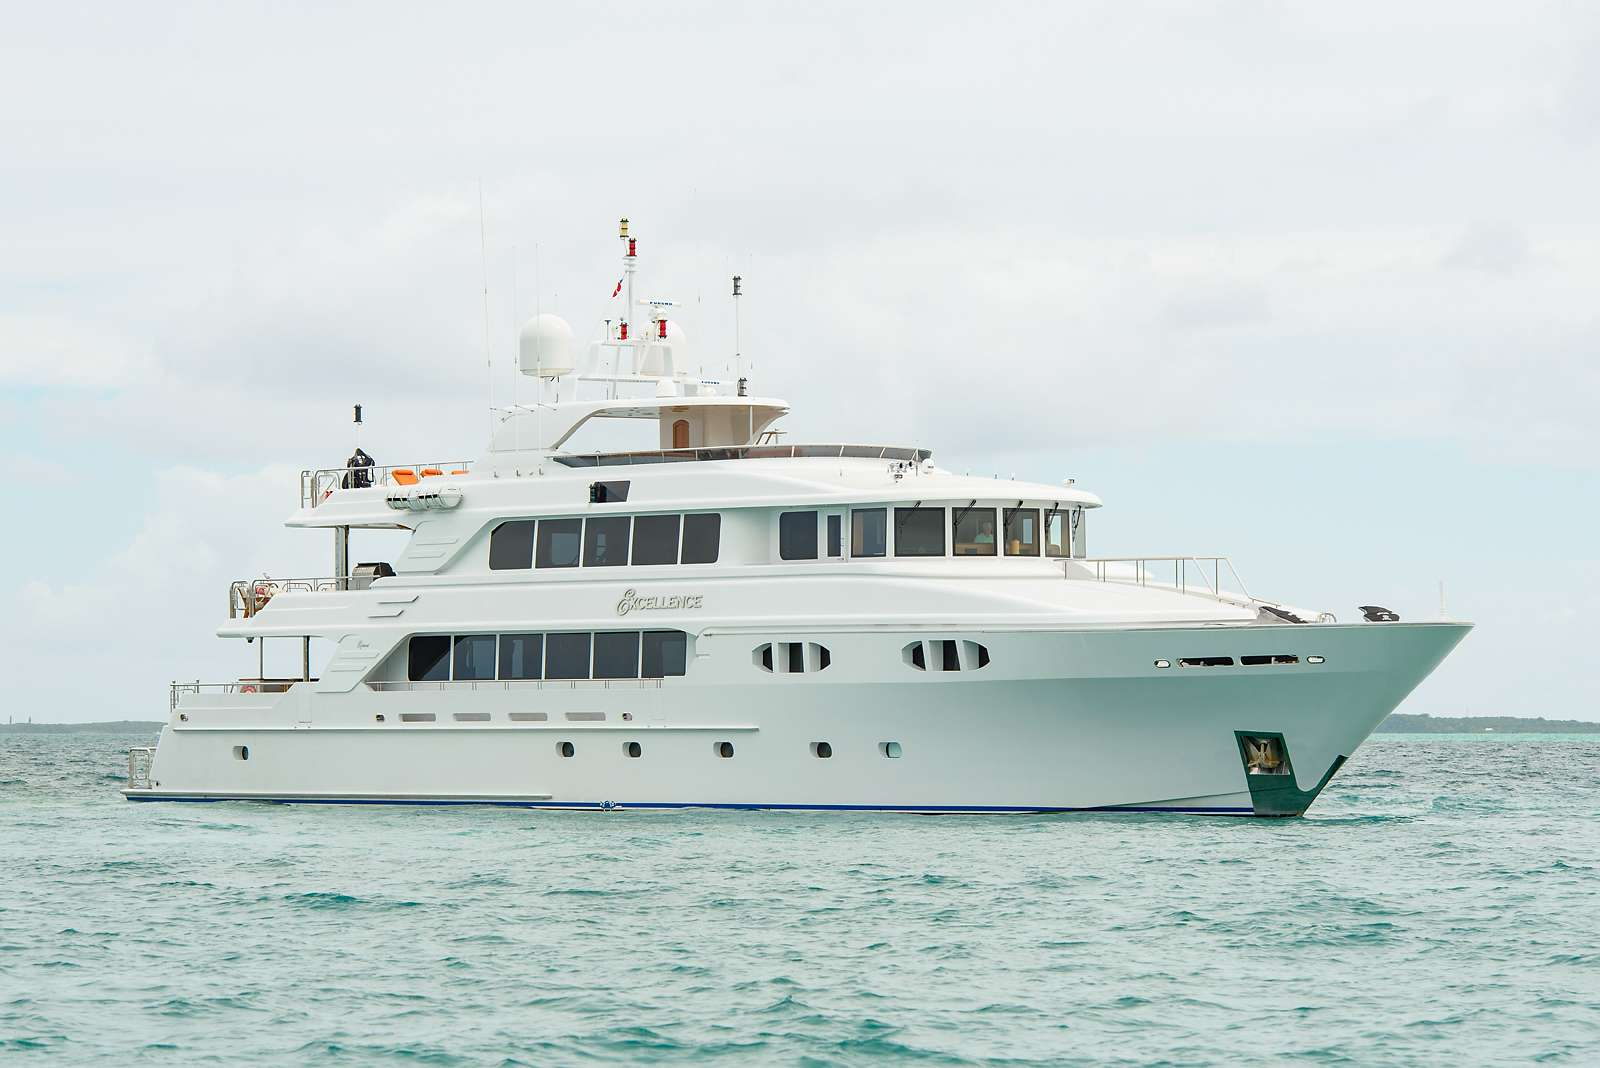 Main image of EXCELLENCE yacht